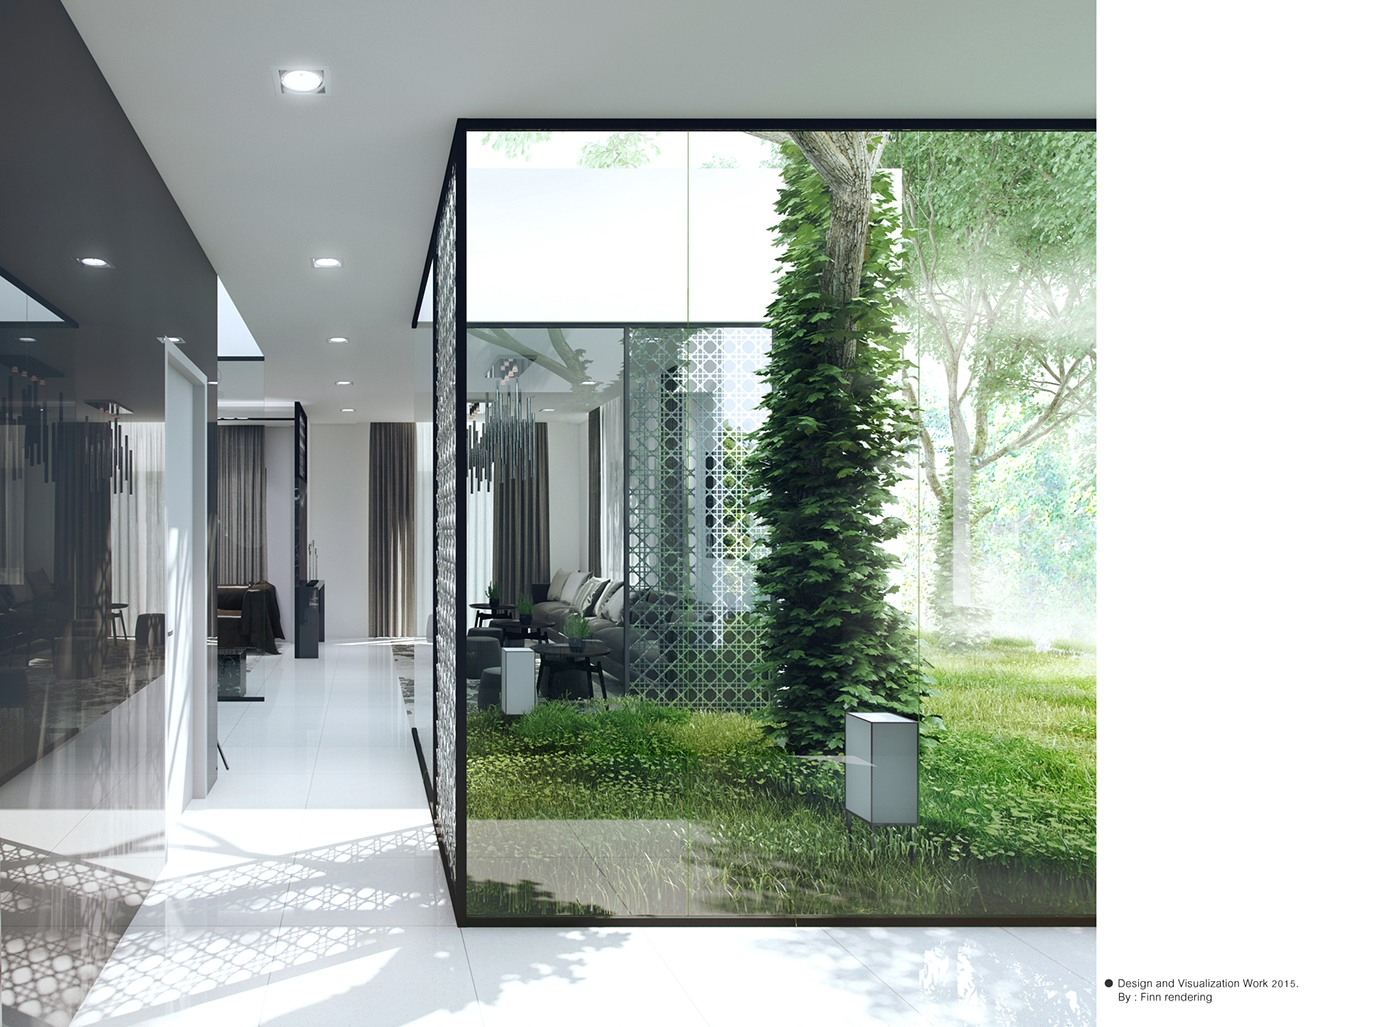 Girih Screens And Glass Walls - 3 natural interior concepts with floor to ceiling windows